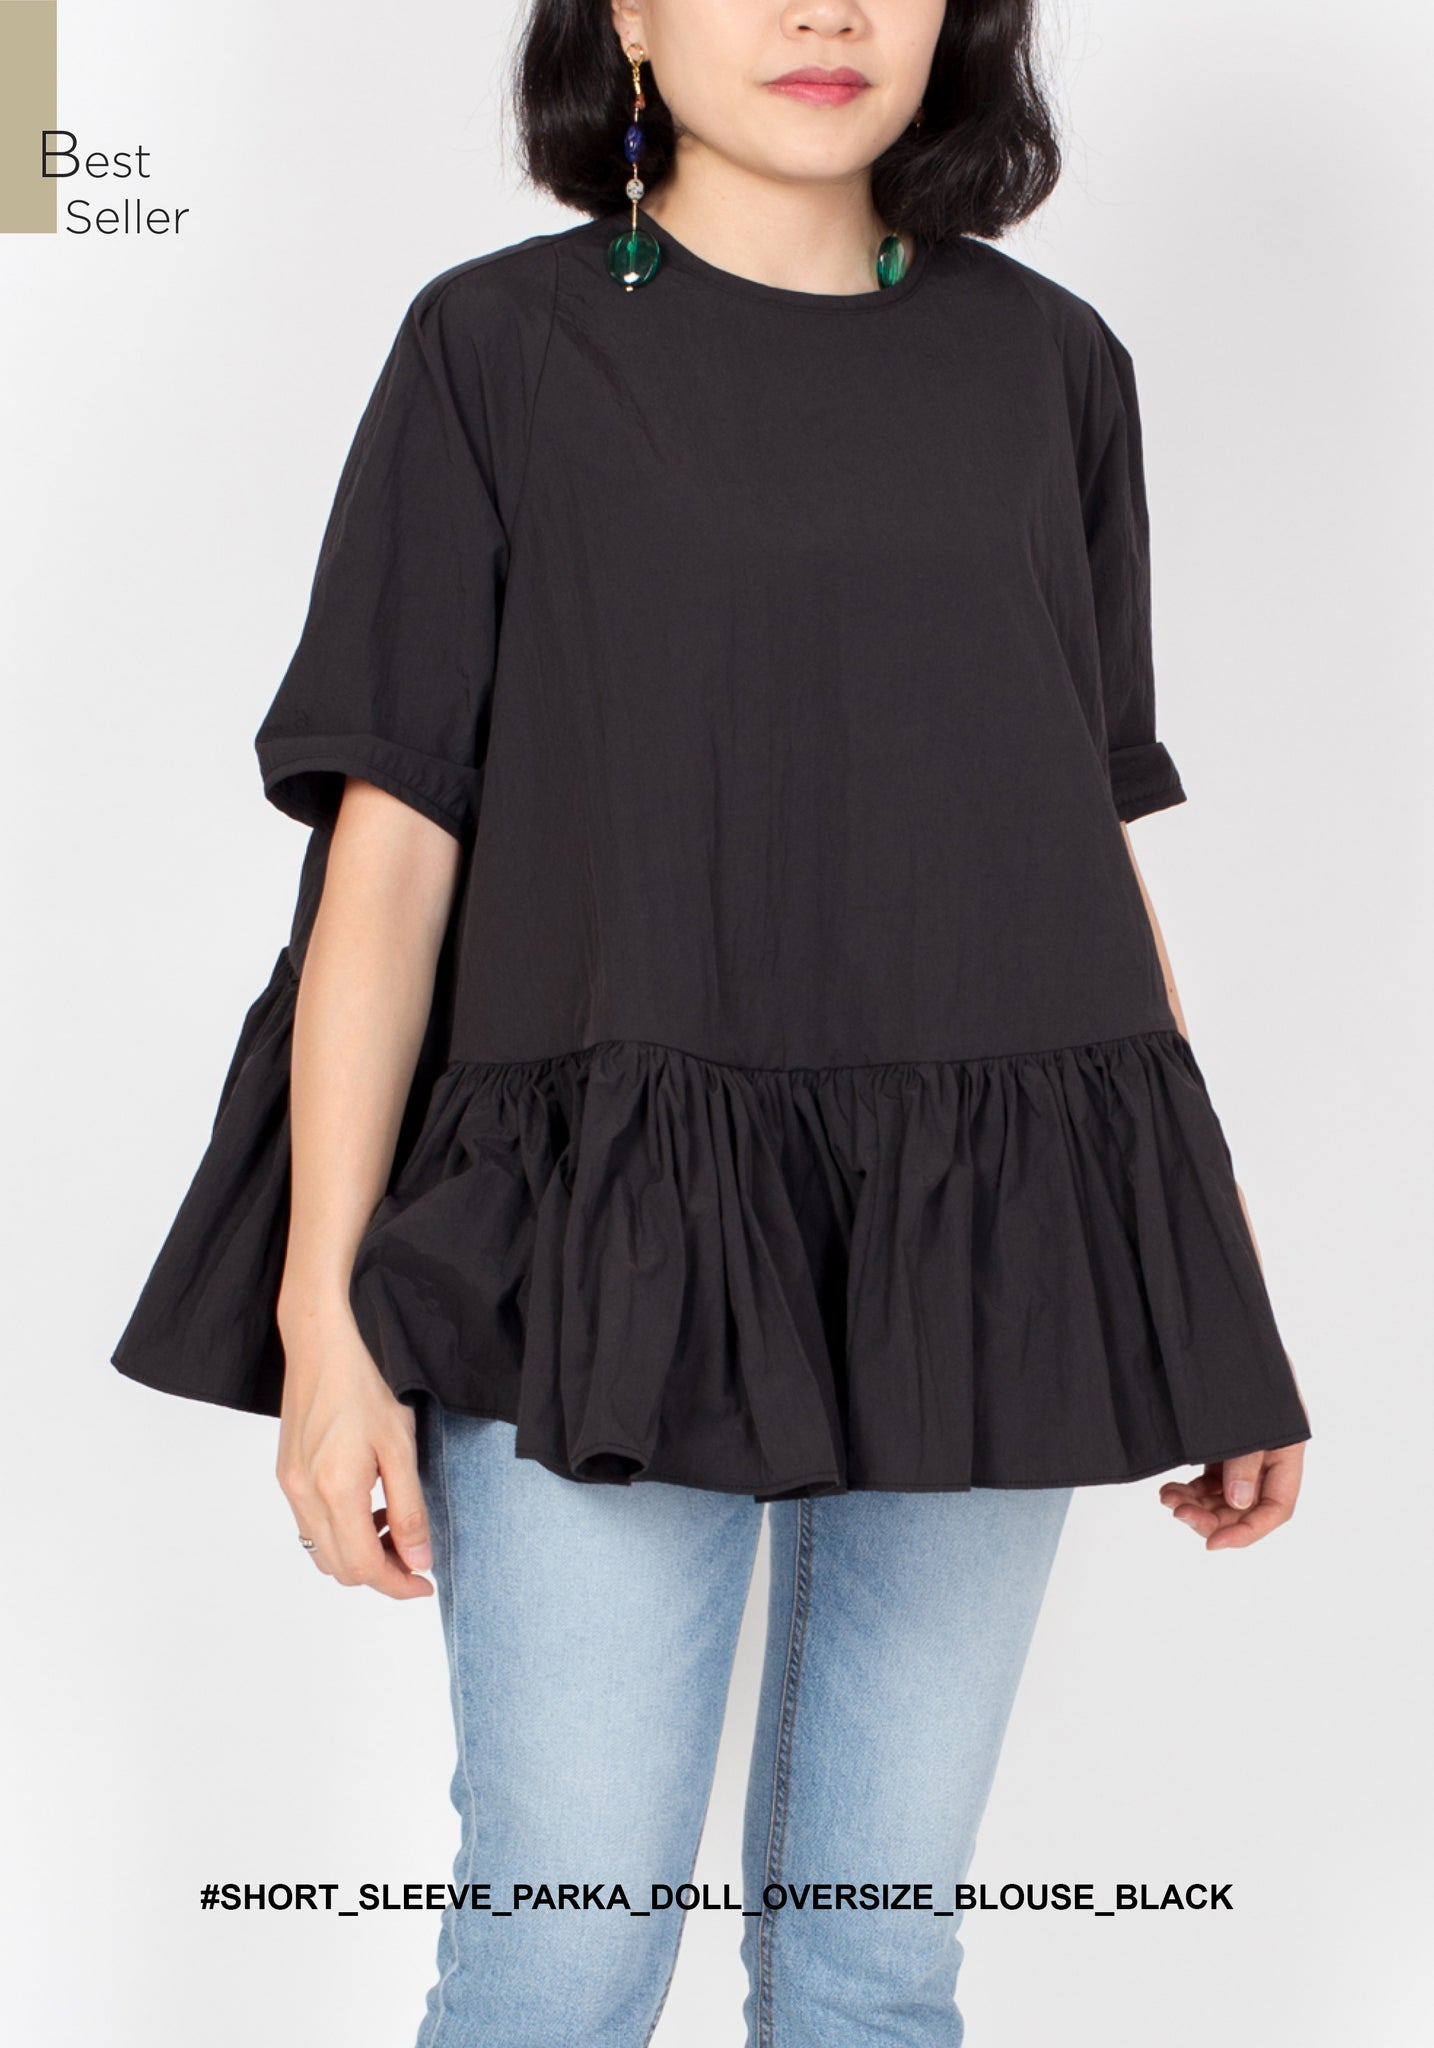 Short Sleeve Parka Doll Oversize Blouse Black